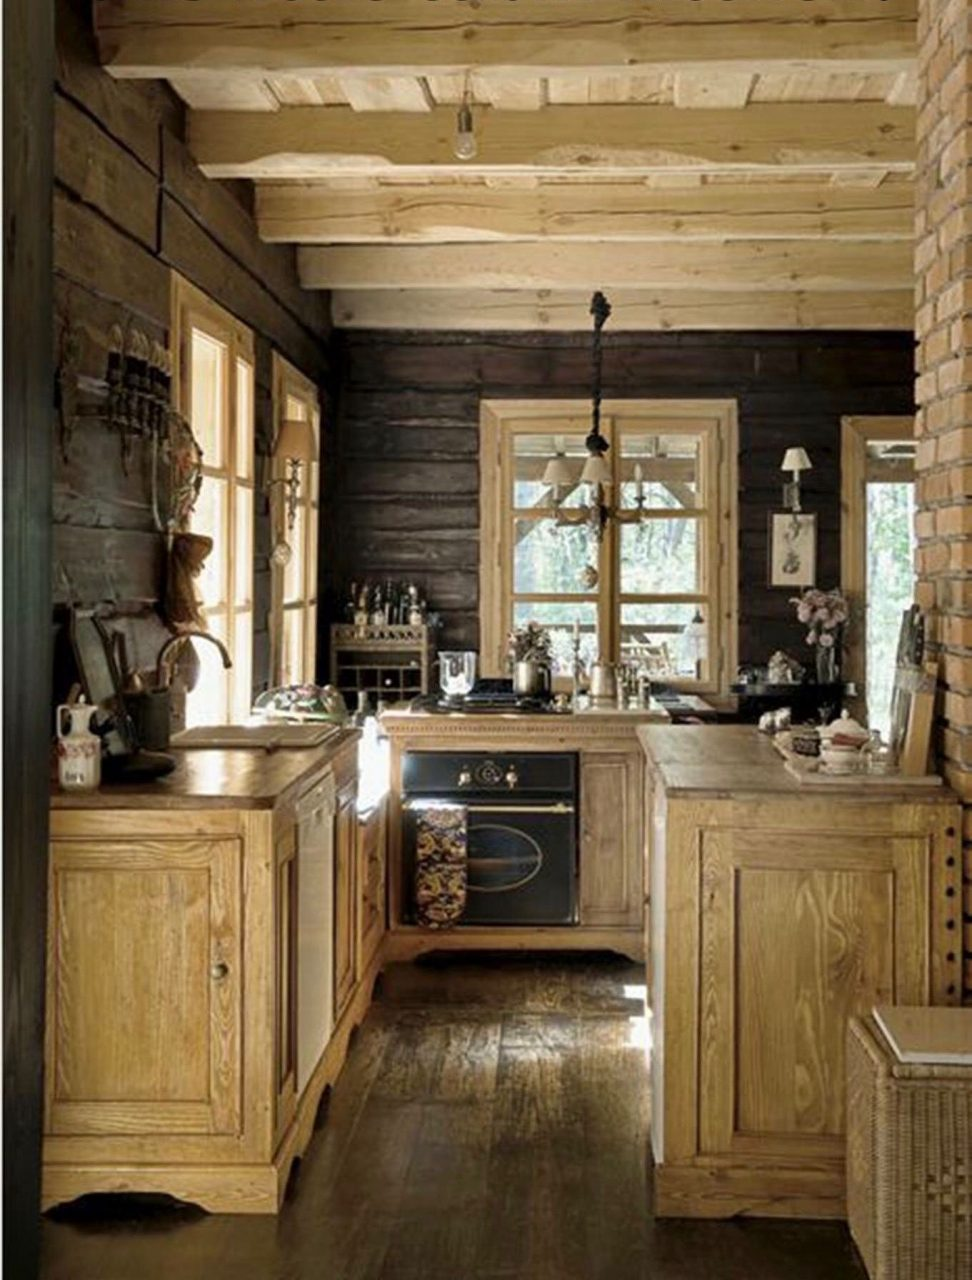 Designs Appliances Plans Log Decorating Rustic Kitchen Images Small